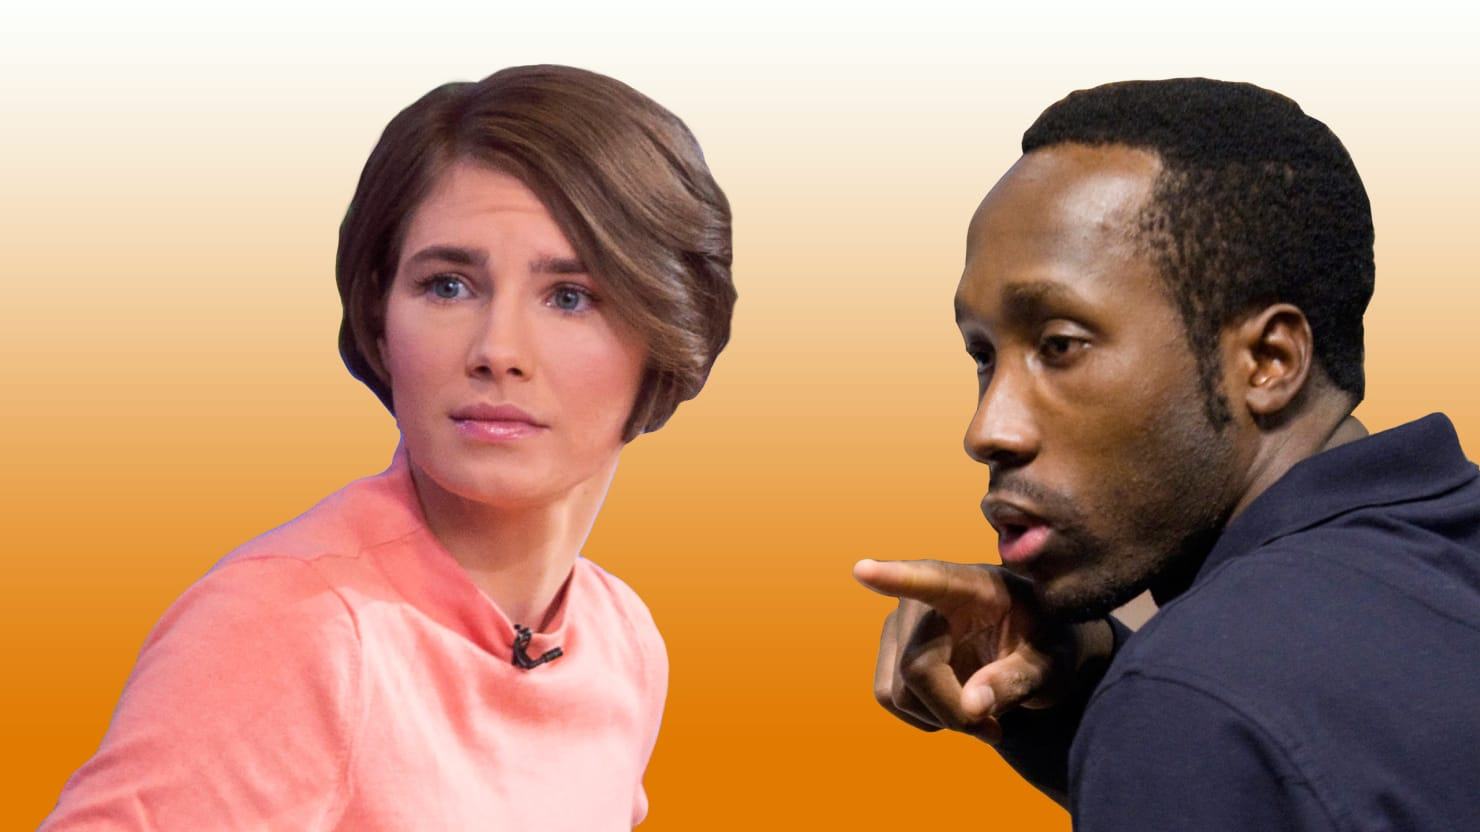 Convicted killer rudy guede im 101 certain amanda knox was there rudy guede the lone killer convicted in meredith kerchers 2007 murder gives his first ever interviewand points the finger at knox ccuart Gallery